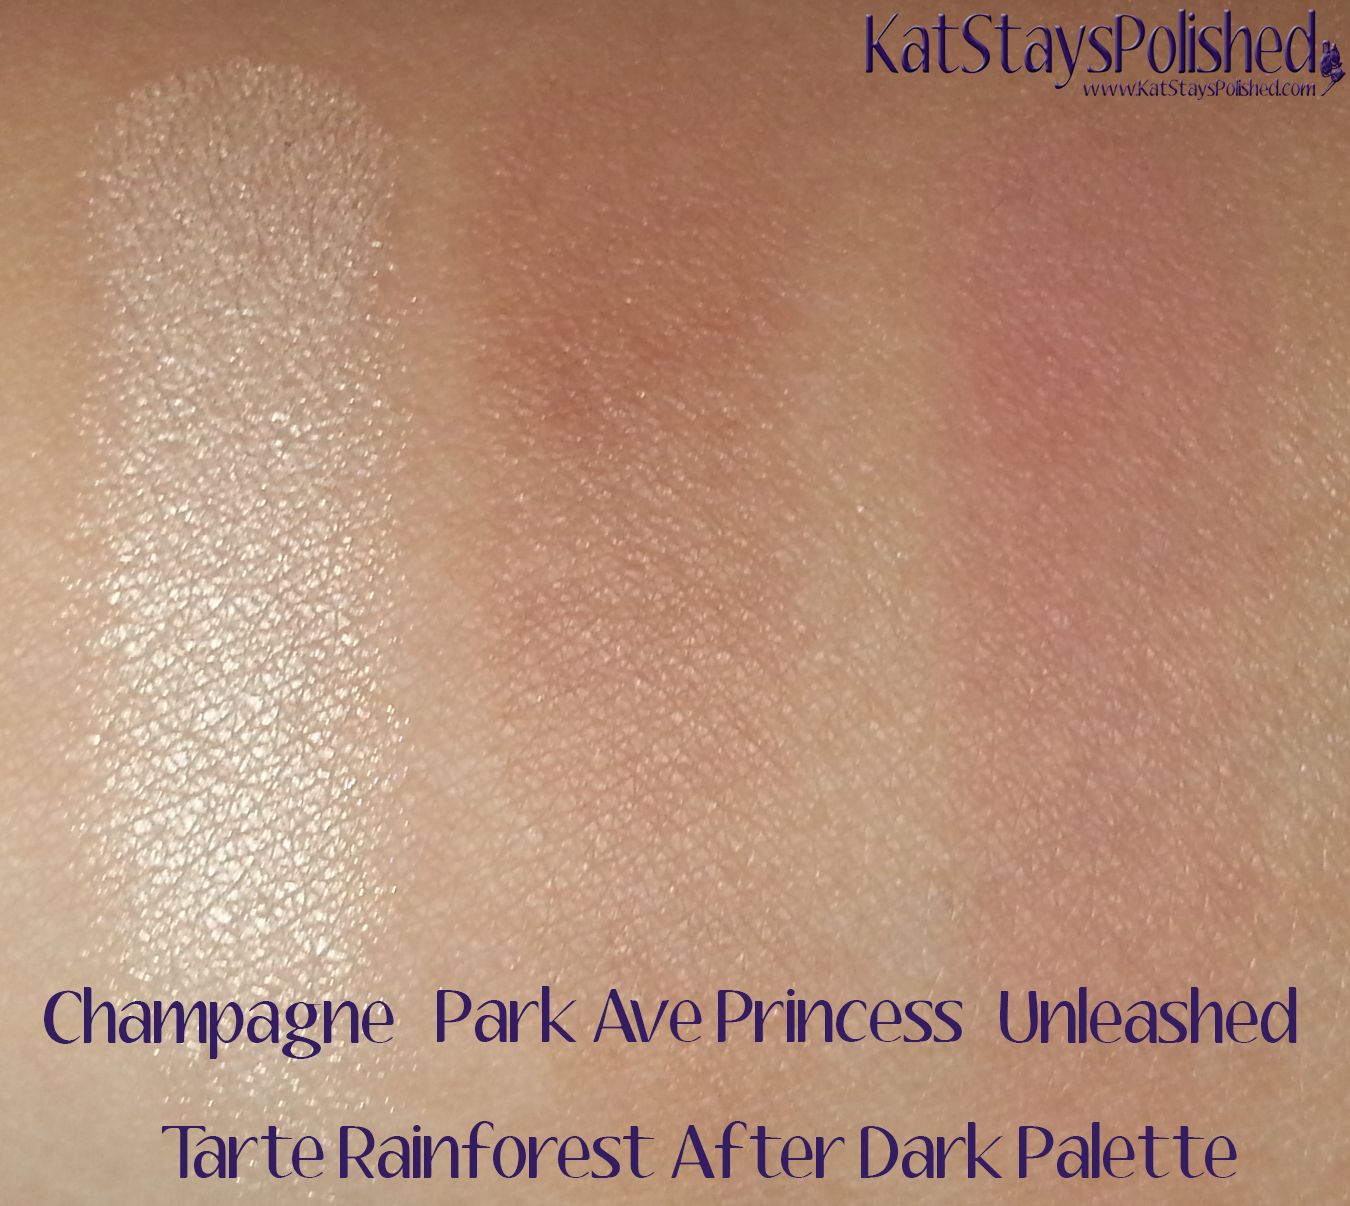 Tarte Rainforest After Dark Palette - Cheek Colors | Kat Stays Polished